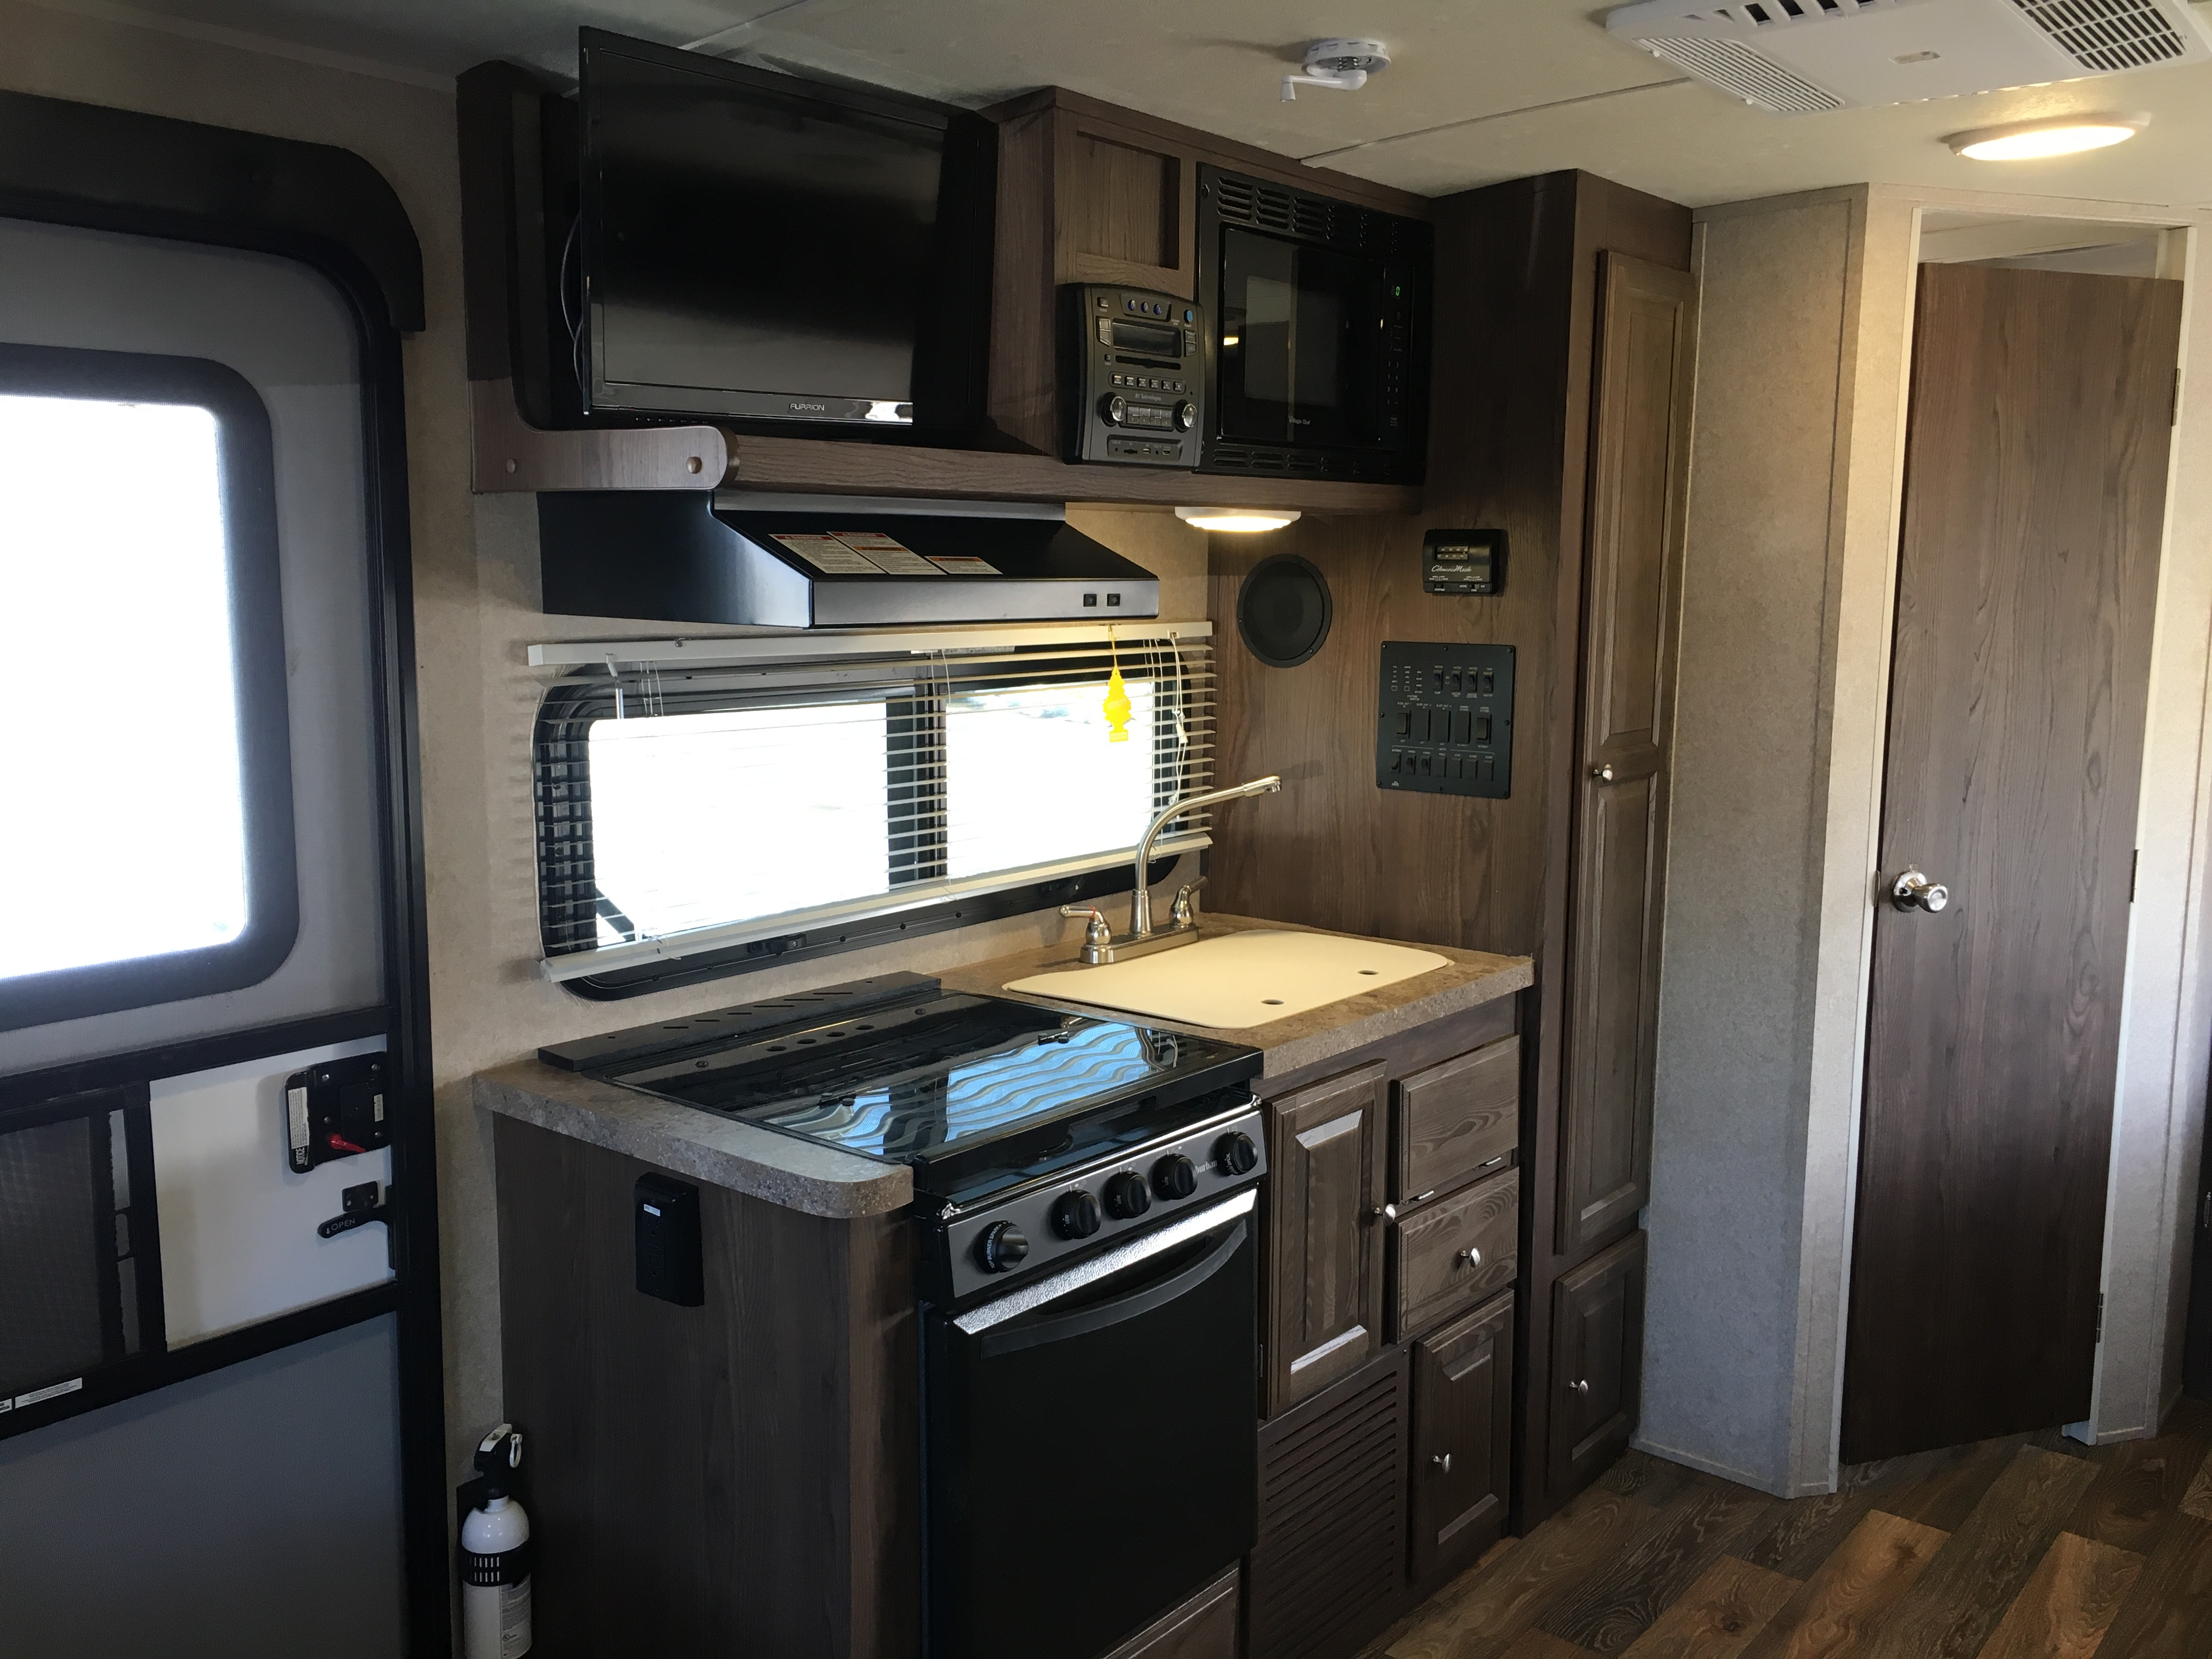 So much convenience when you're out on your adventure: double bowl sink, 3 burner gas stove, gas oven, venting hood, microwave!. Flagstaff Shamrock 2016